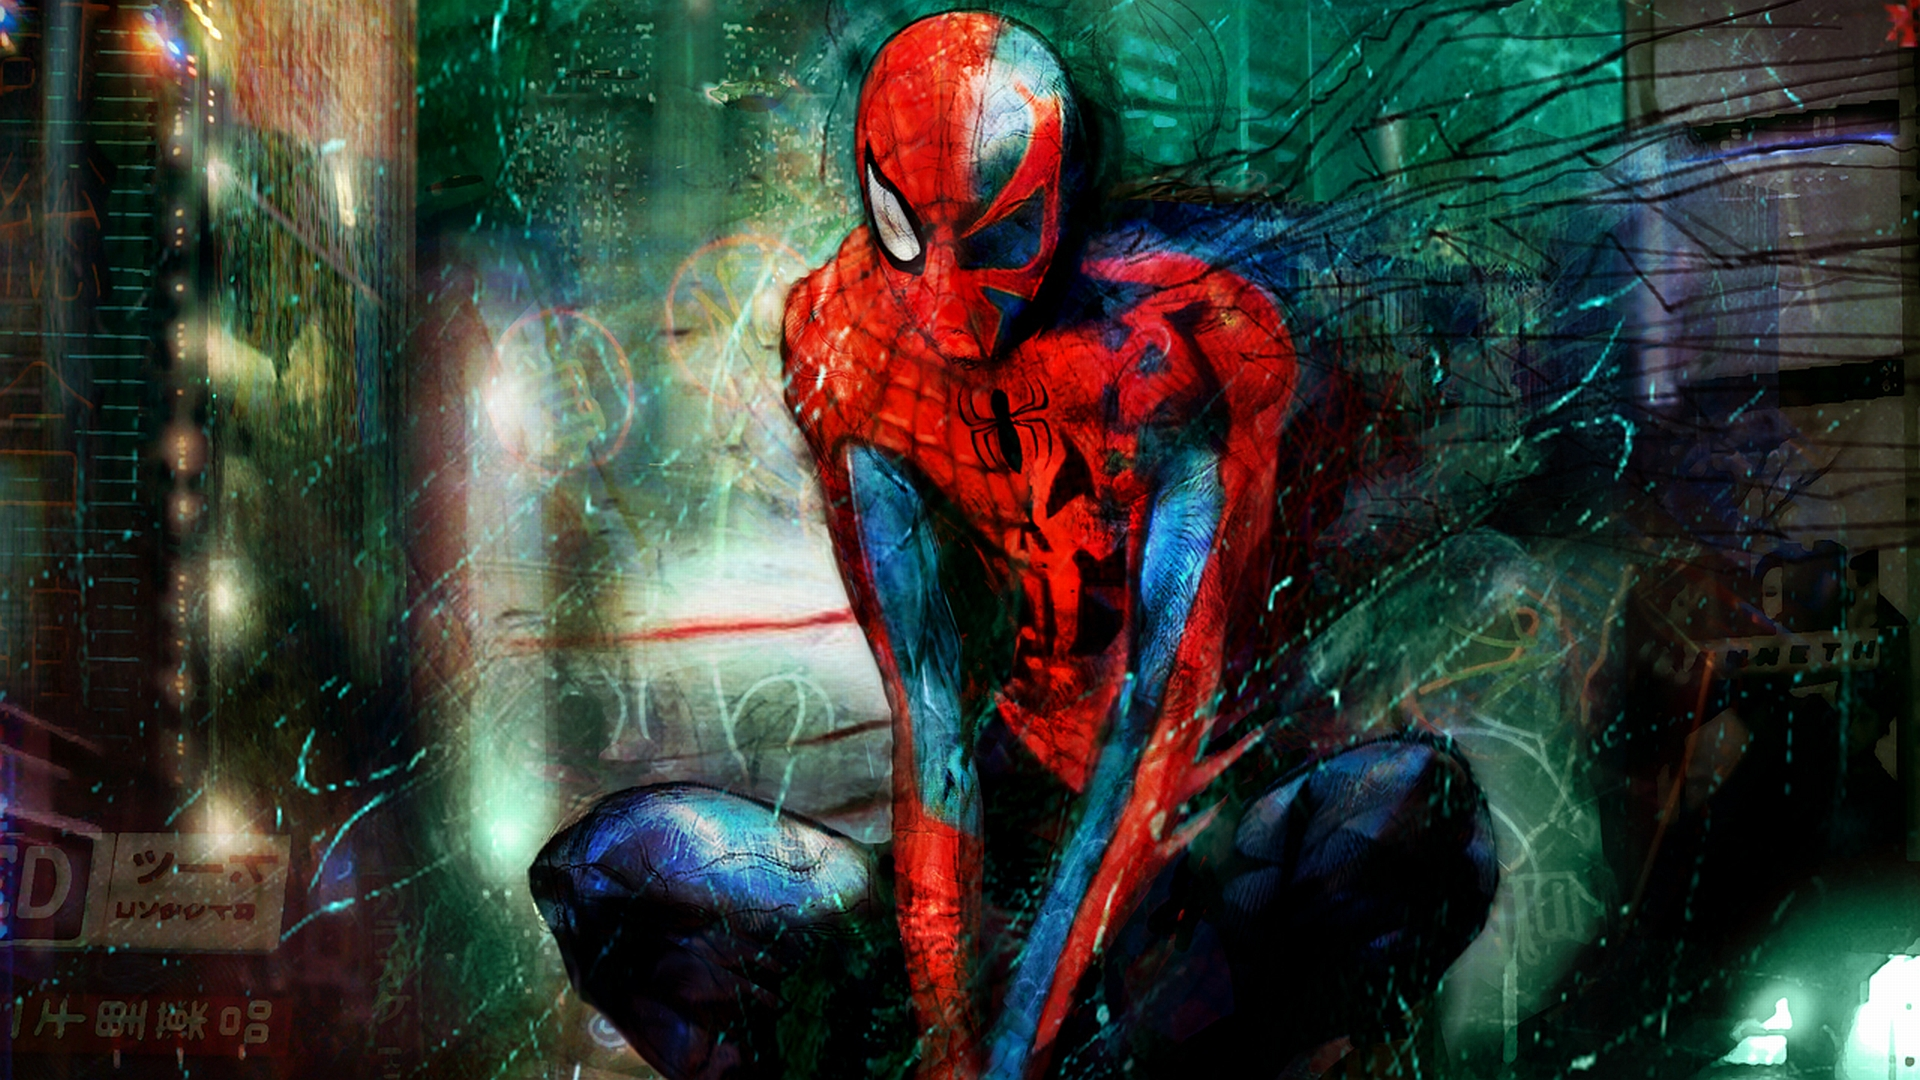 Spider Man 2099 Wallpaper 1080p: 40 Amazing Spiderman Wallpaper HD For PC